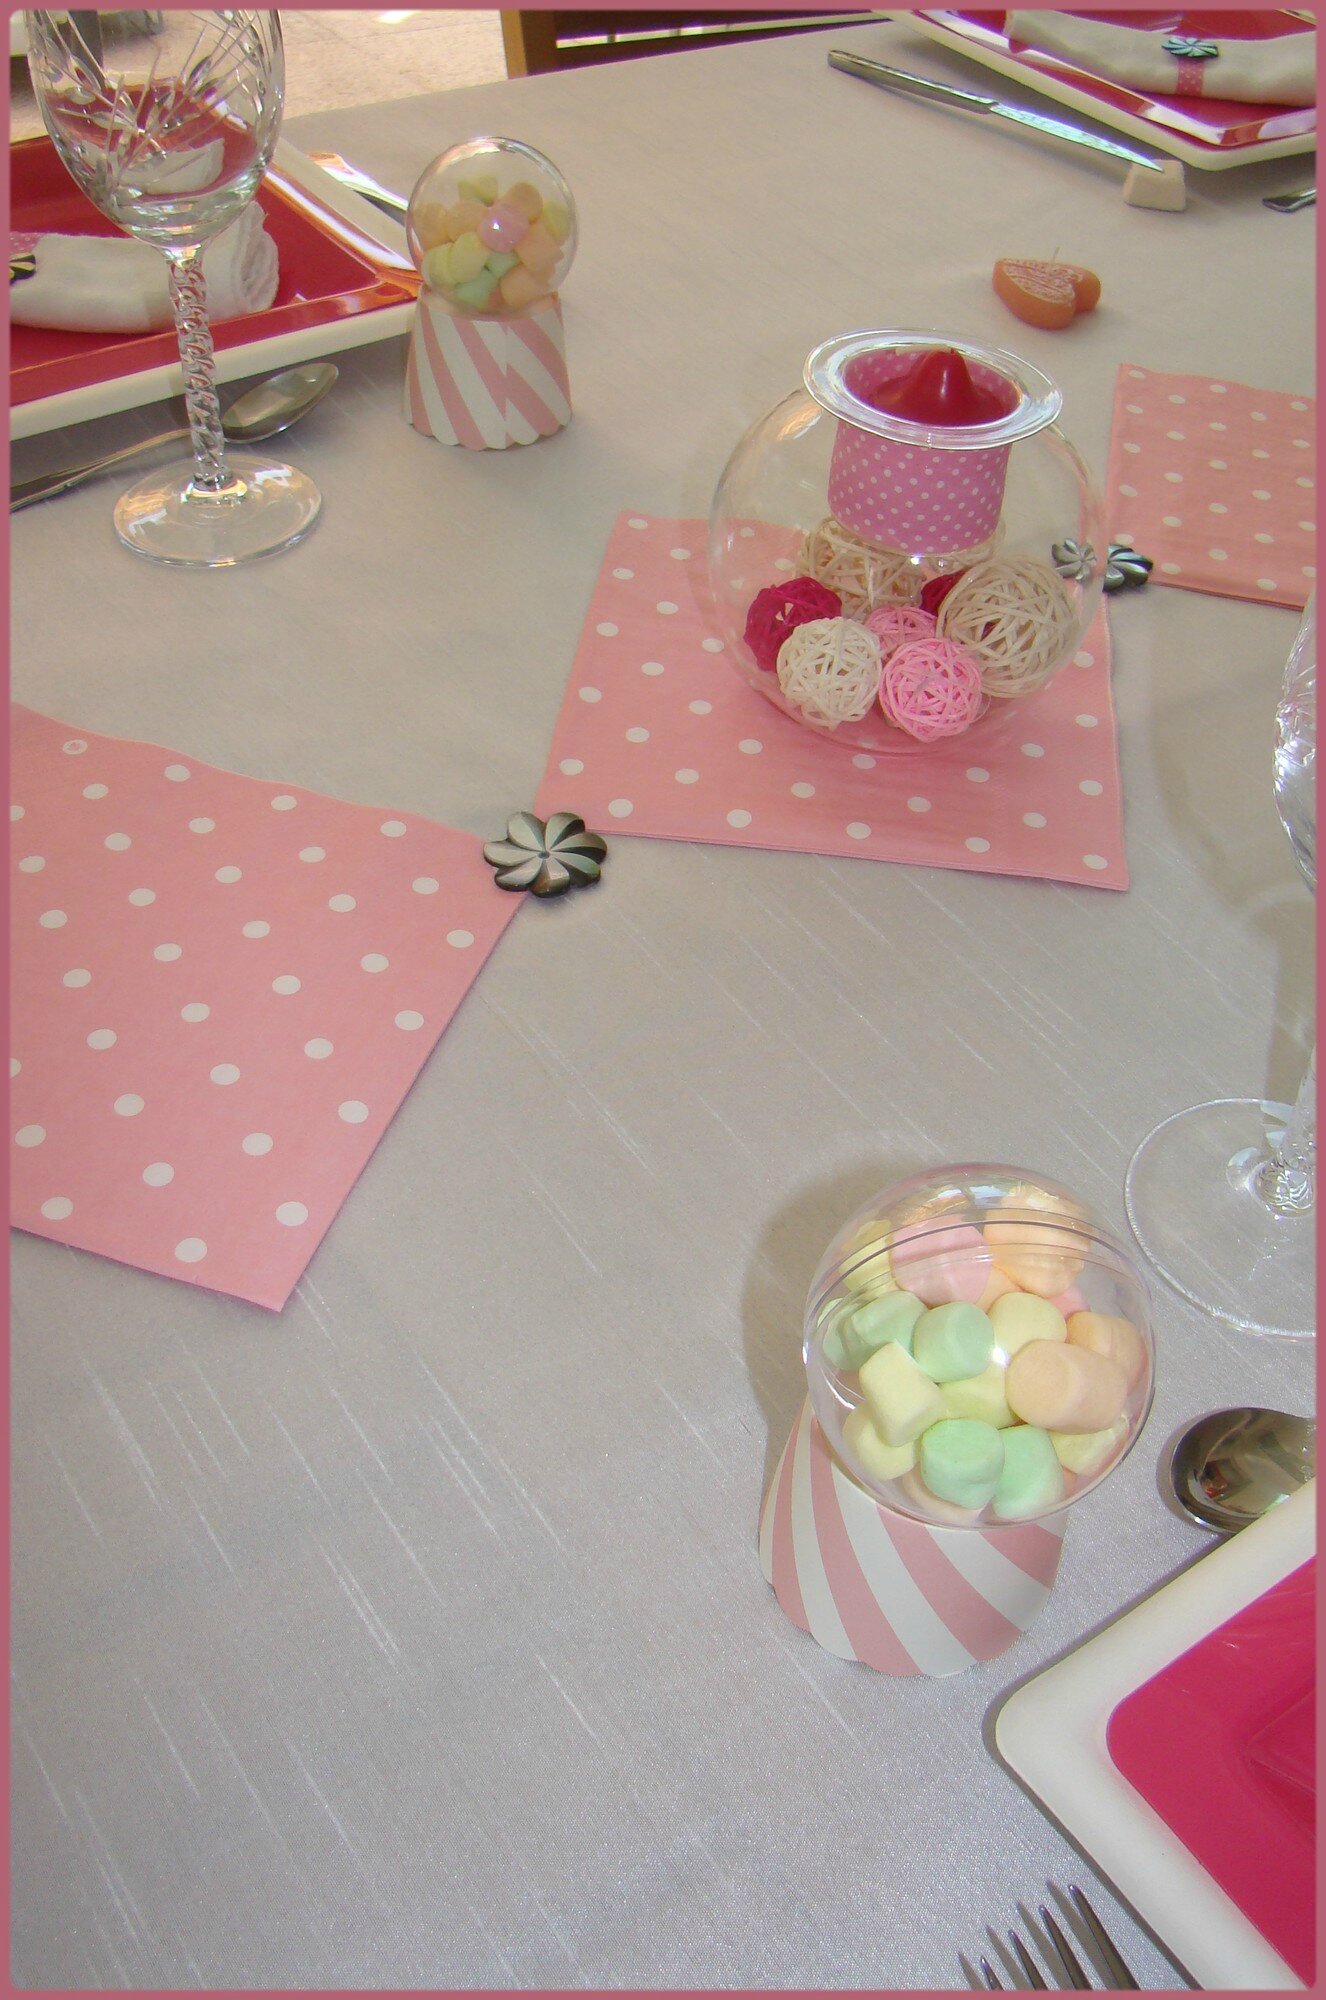 Decoration Anniversaire Girly Déco Table Anniversaire Girly Miss Gleni And Co